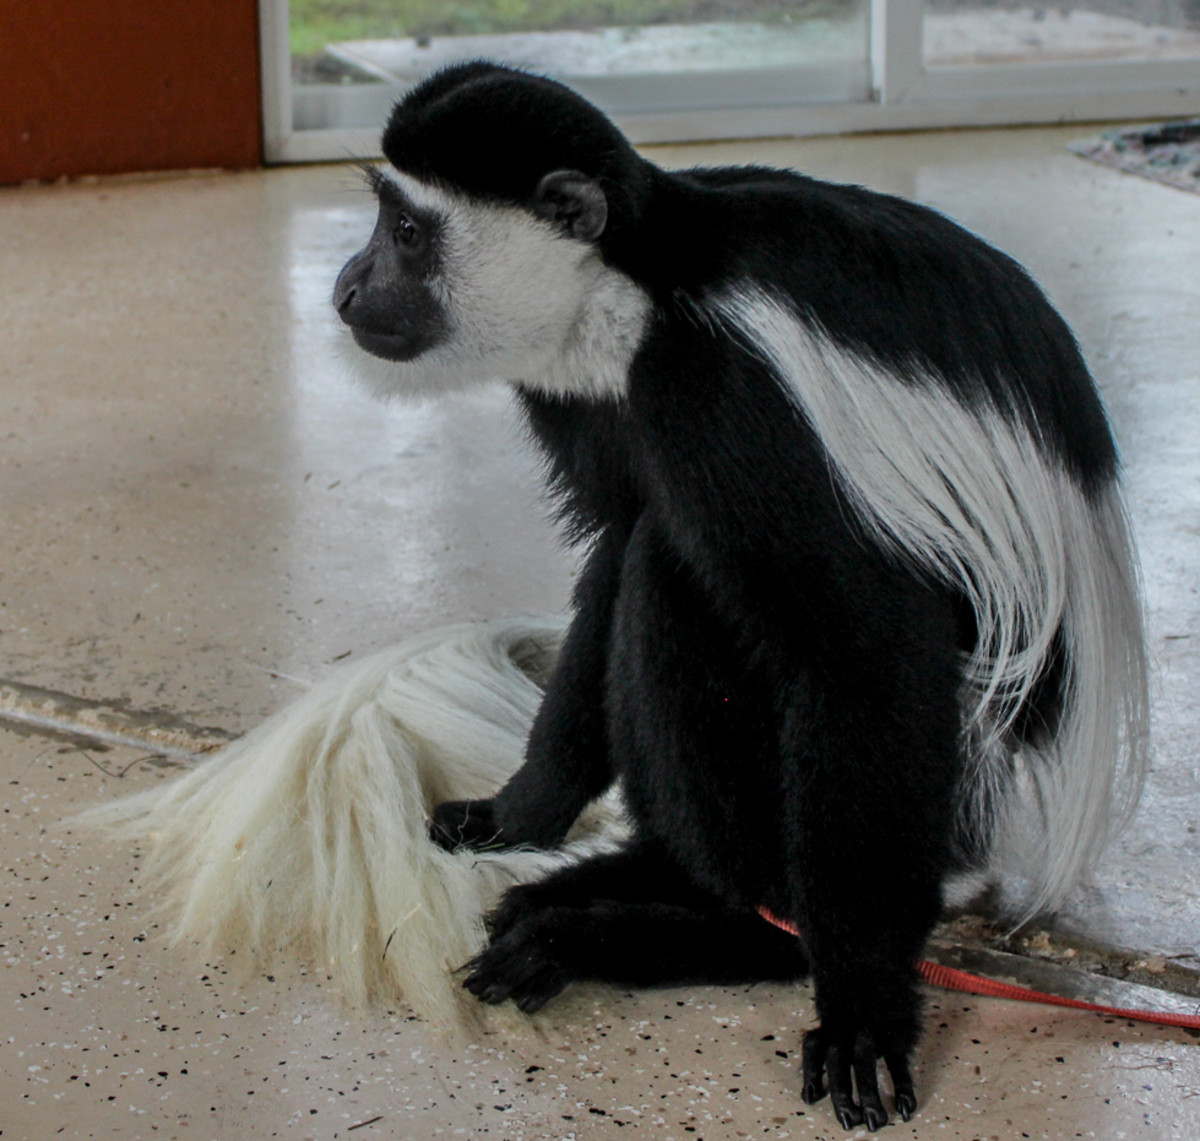 A black-and-white colobus monkey.